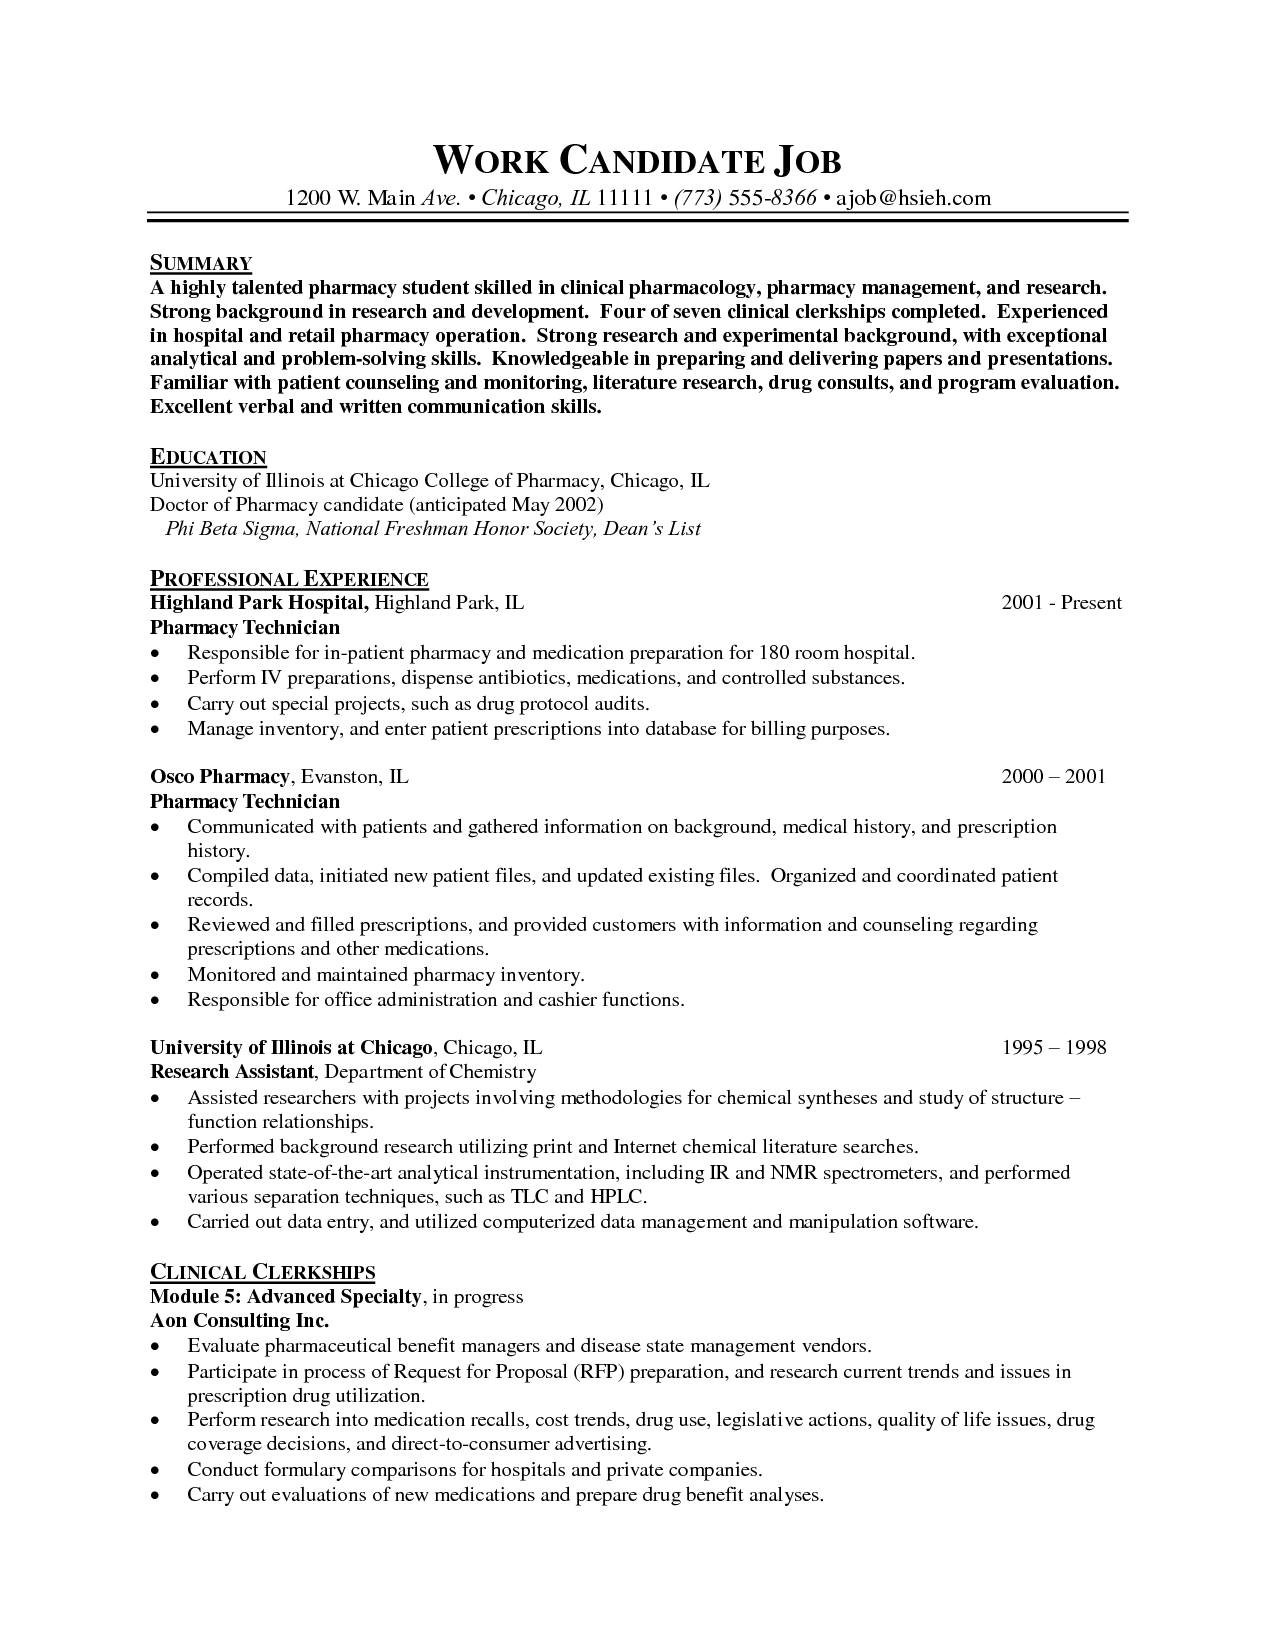 pharmacist resume cover letters